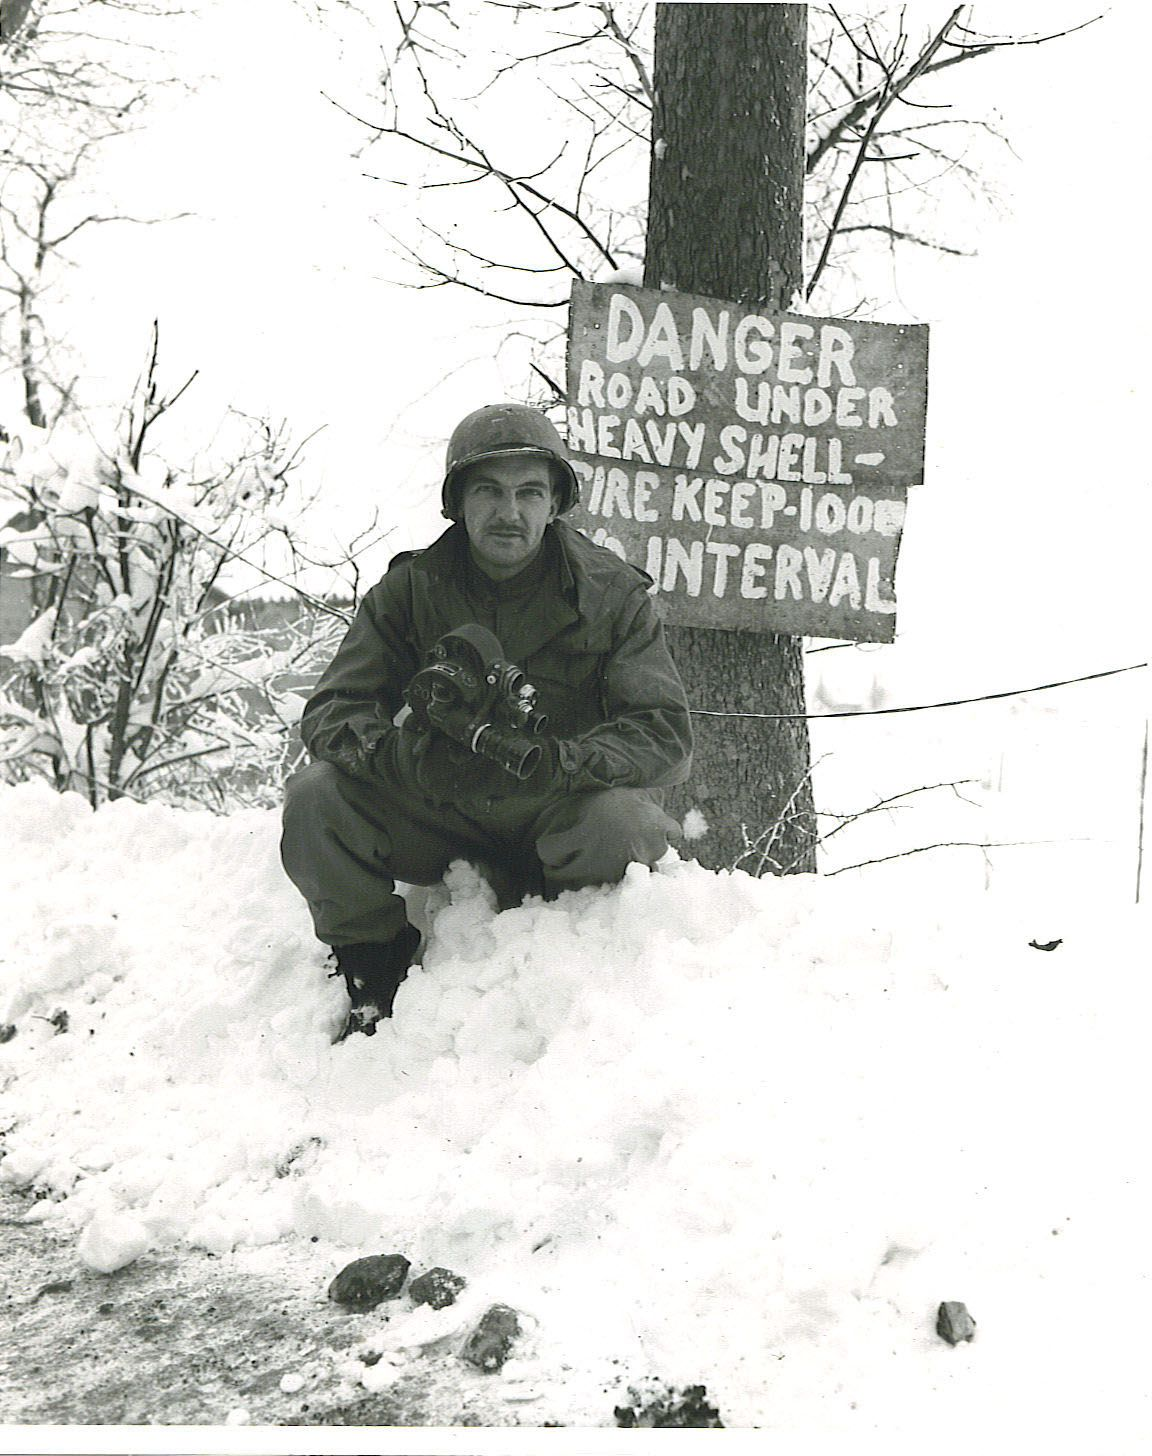 U.S. Army Signal Corps photographer Edmund Burke O'Connell, a motion picture photographer attached with the 196th Signal Photographic Company with his Bell & Howell 35mm Eyemo 71-Q motion picture camera during the Battle of the Bulge, Dec. 1944.